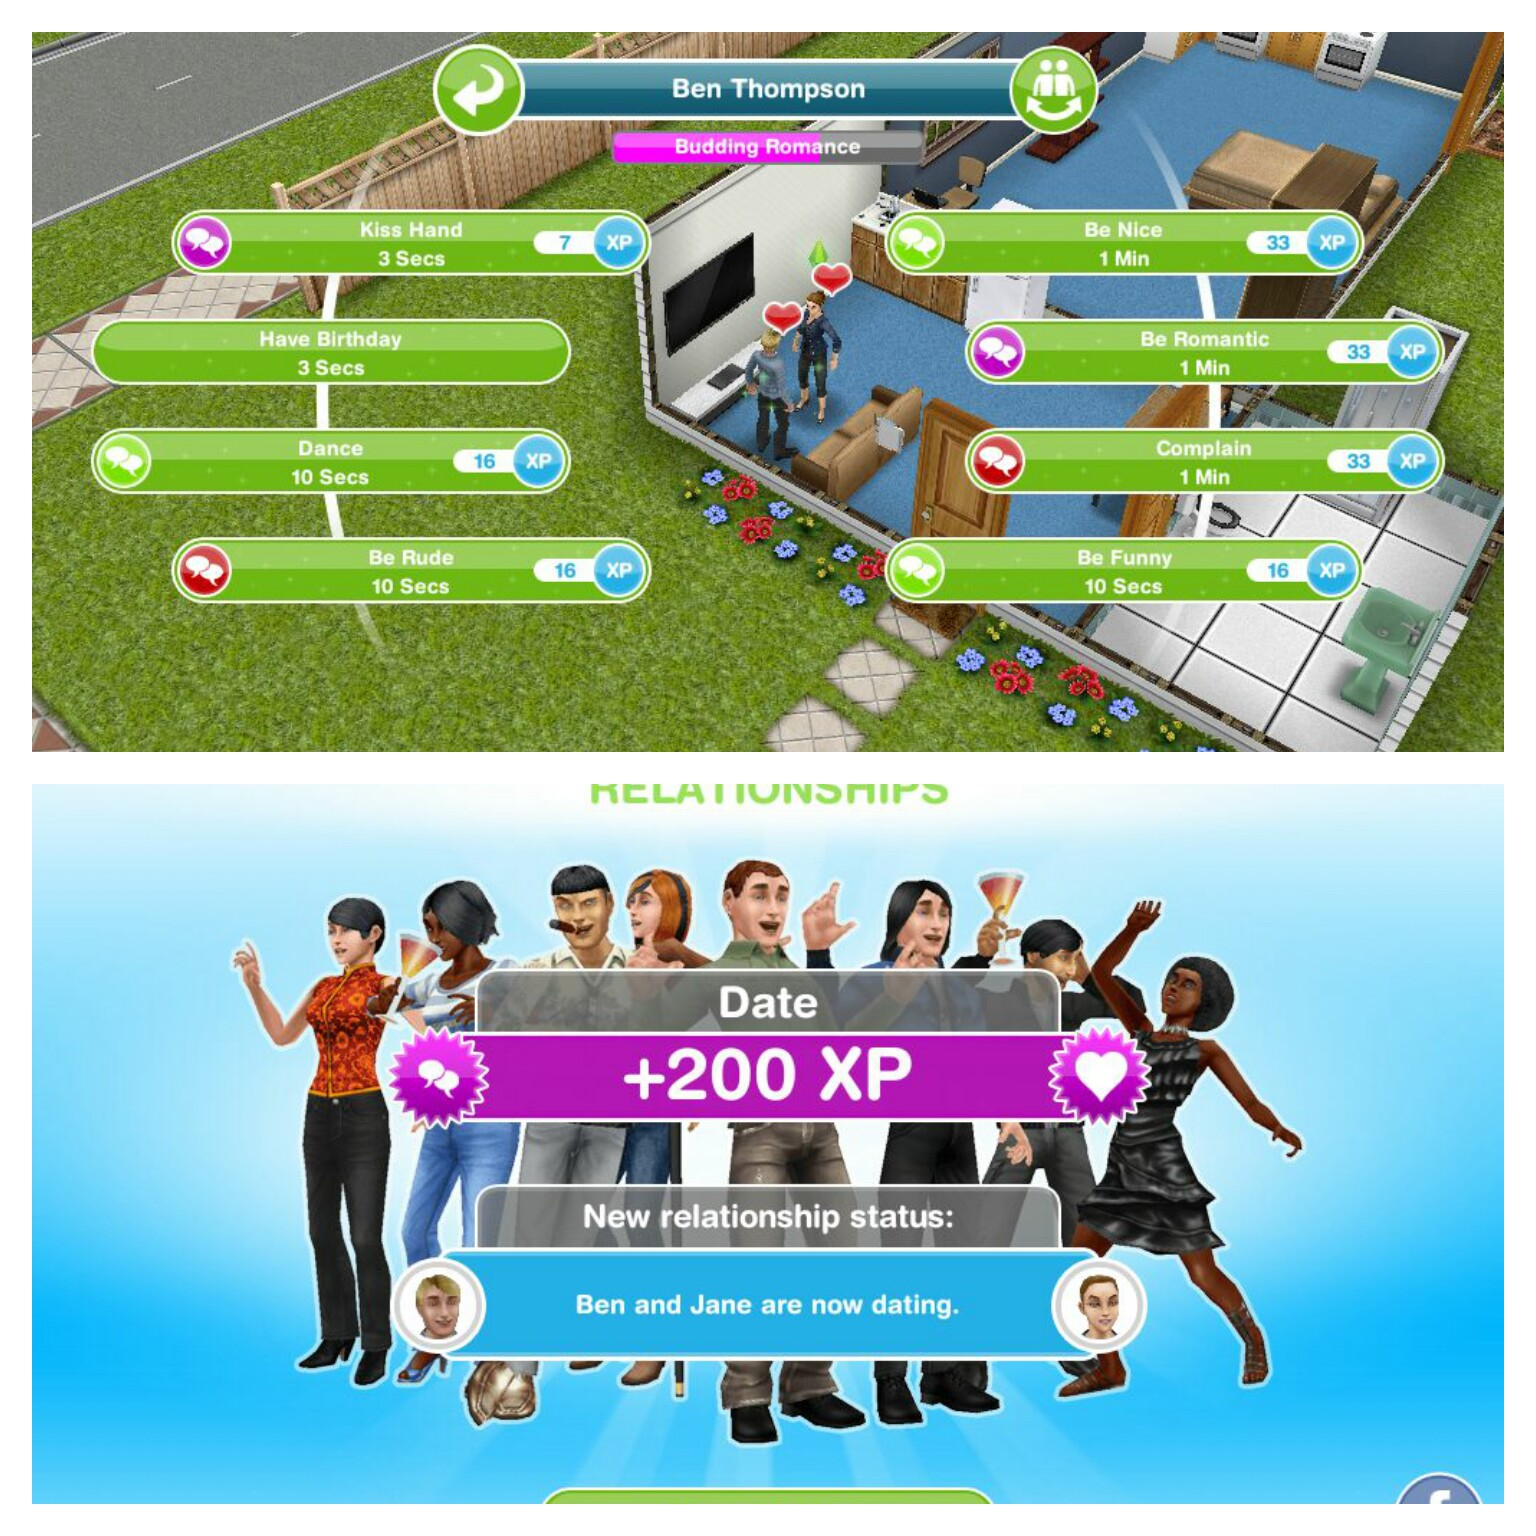 build 2 dating relationships sims freeplay Sims freeplay iphone relationship try making 2 new sims then get them to start dating - these tasks can be done with any sim not the couple you are working on.